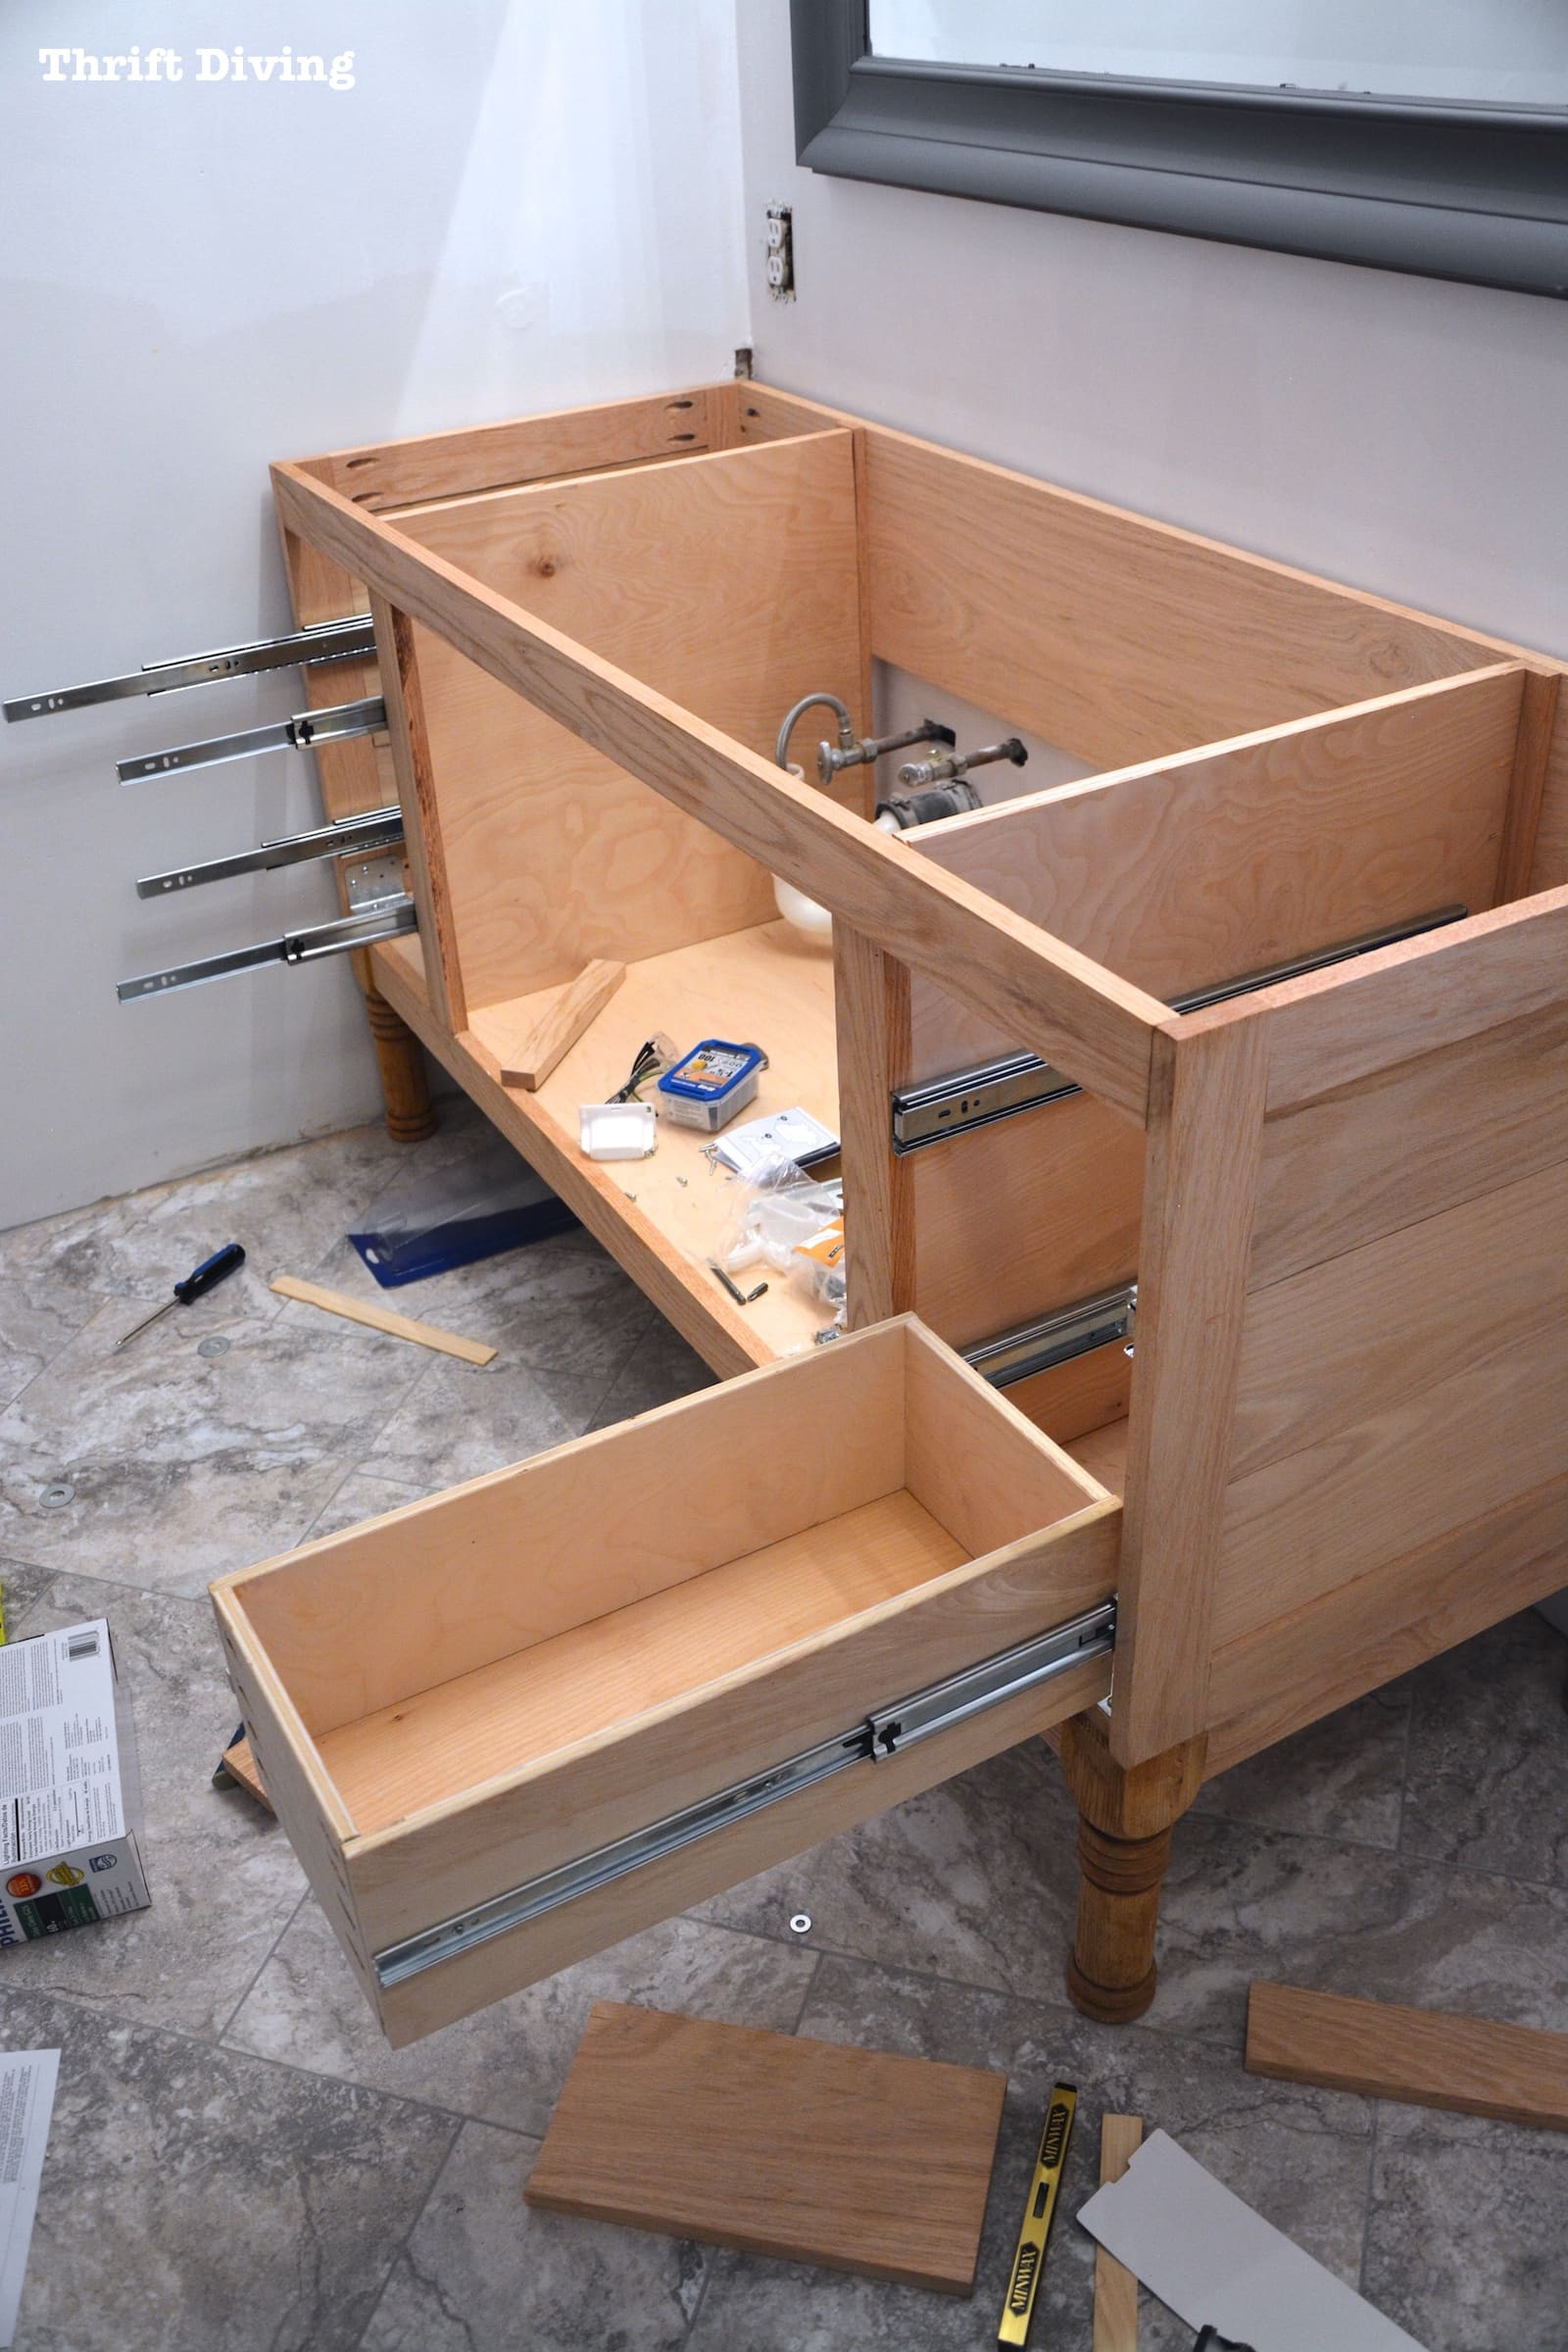 Best ideas about DIY Kitchen Cabinet Drawers . Save or Pin Build a DIY Bathroom Vanity Part 4 Making the Drawers Now.